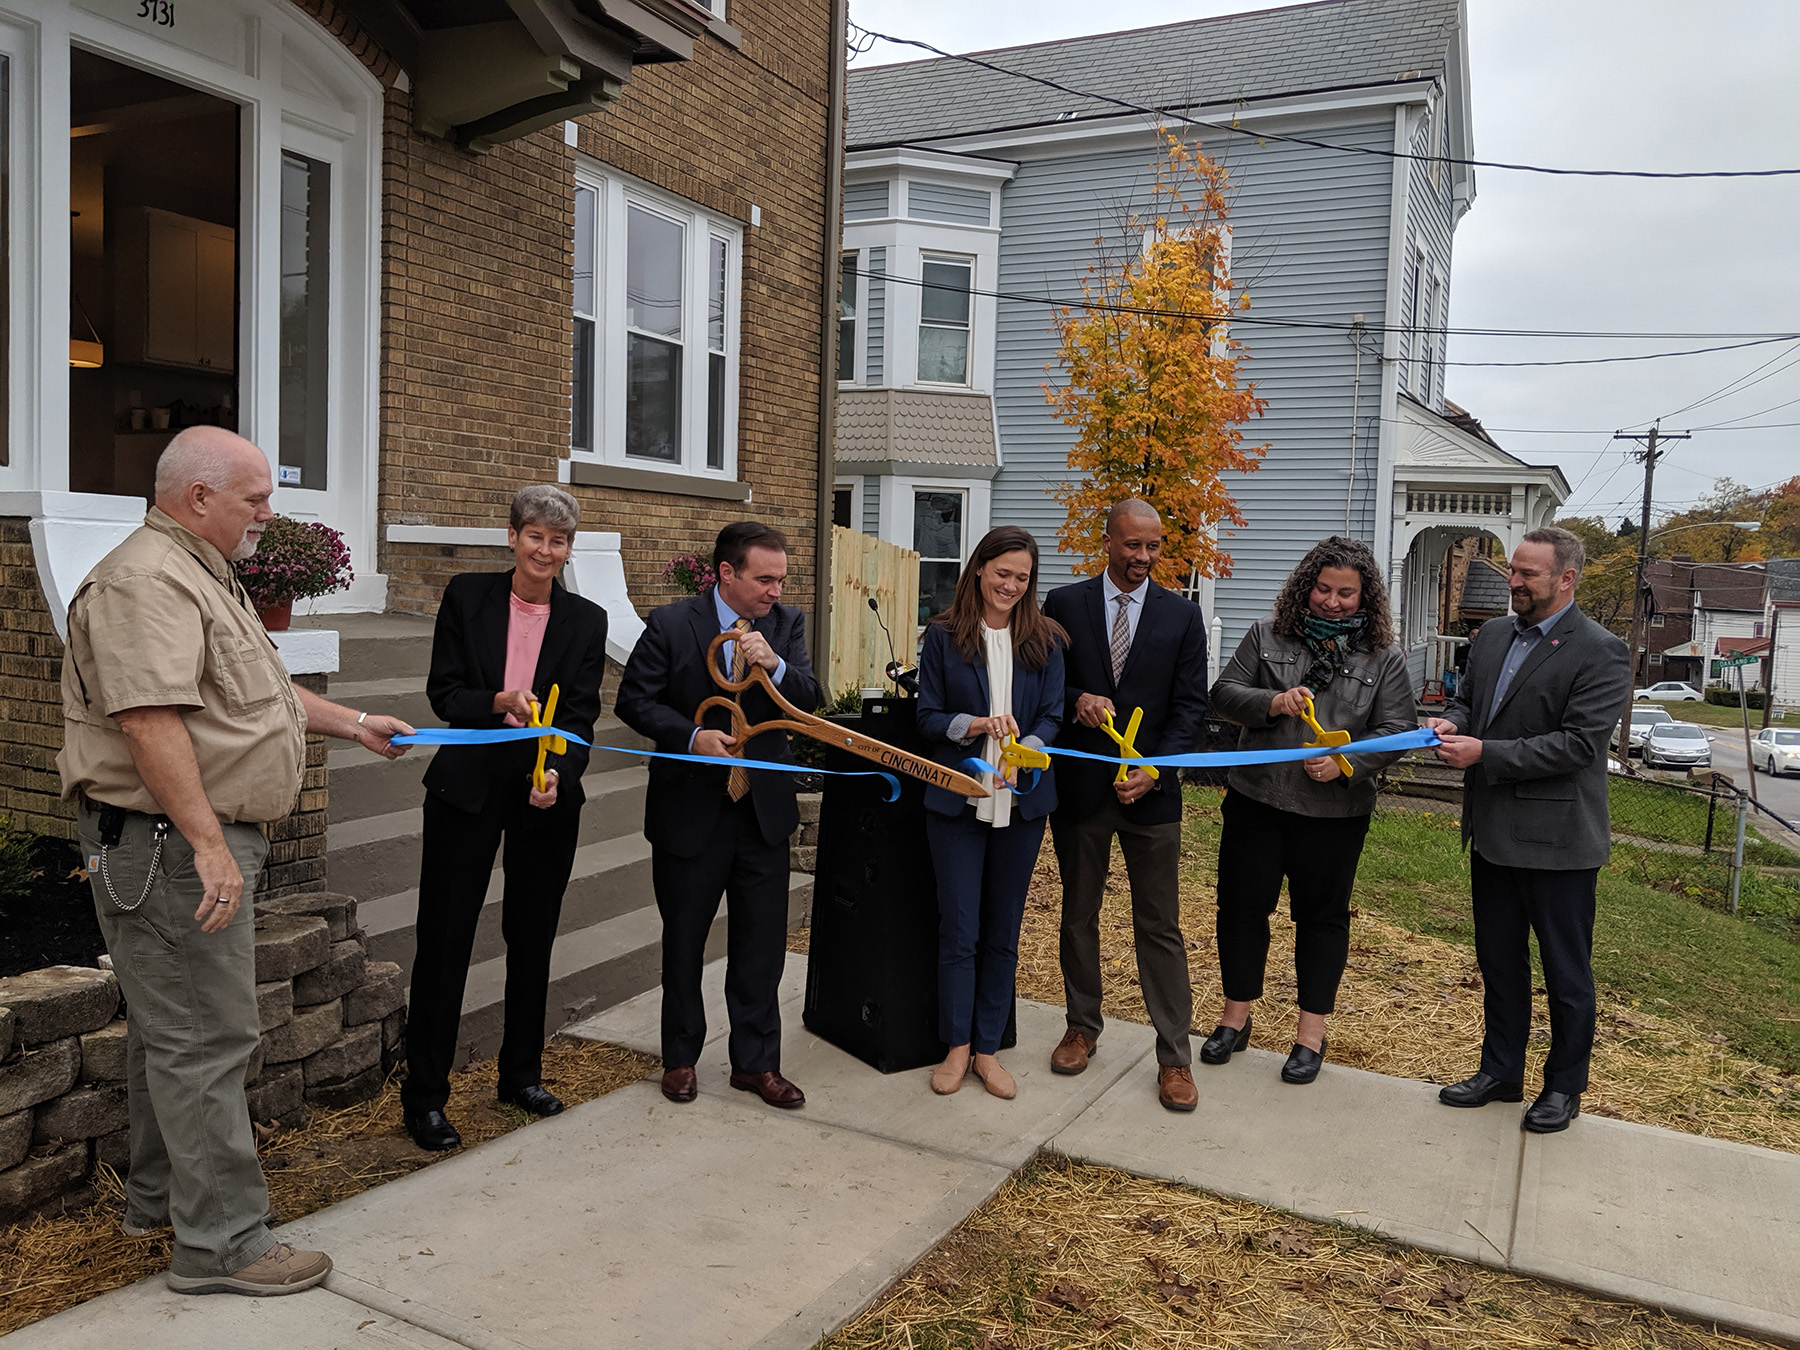 Photo of official ribbon cutting in front of Price Hill home on St. Lawrence Avenue